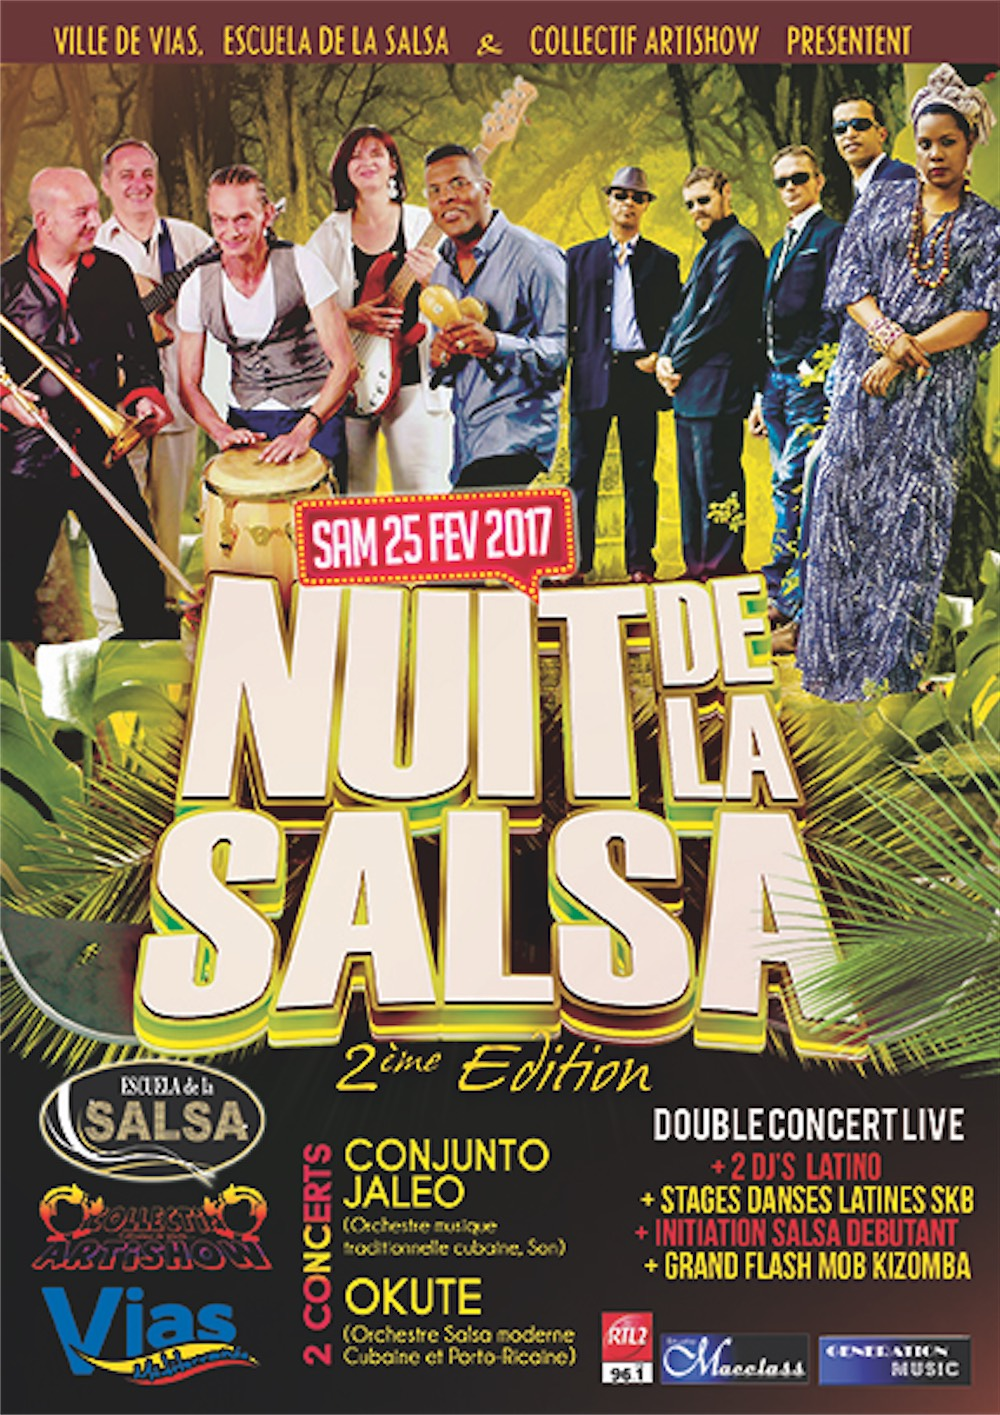 2017 02 23 113145 ill2 2017 02 04 183634 ill1 nuit salsa 2eme edition RECTO bas def